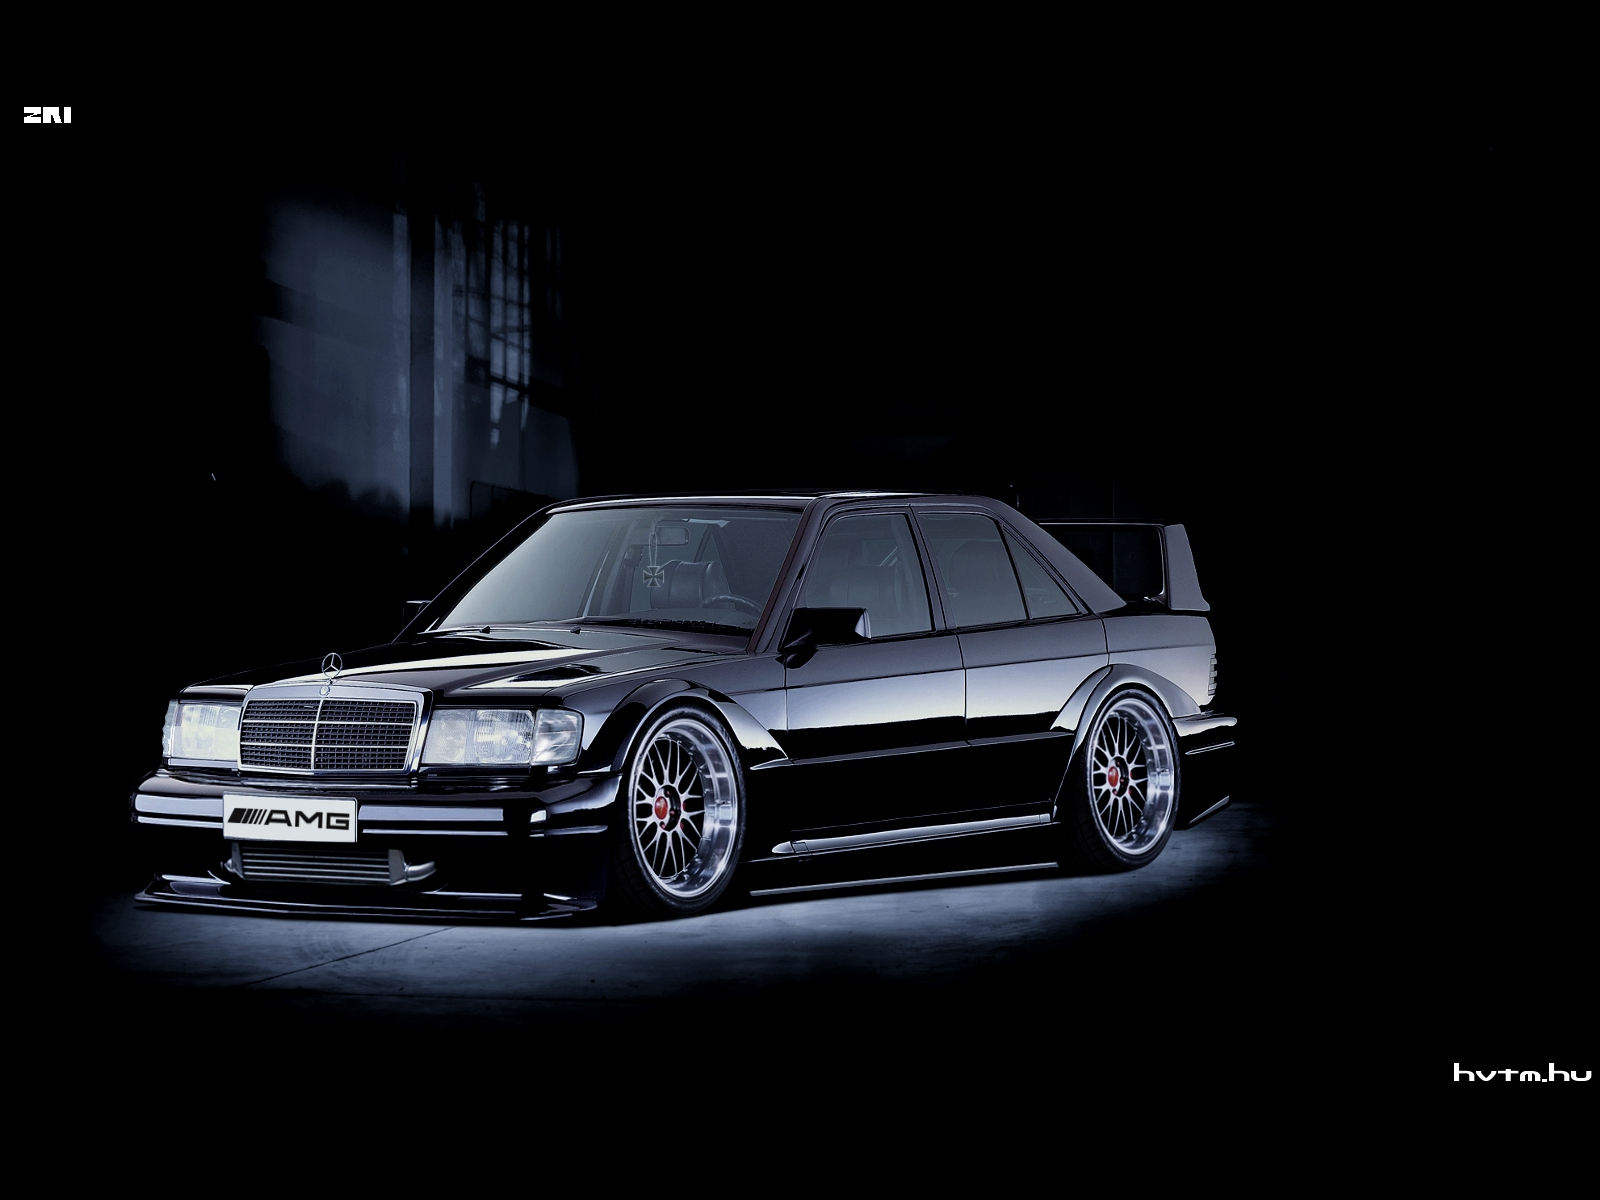 mercedes benz 190e cosworth by zr1vts on deviantart